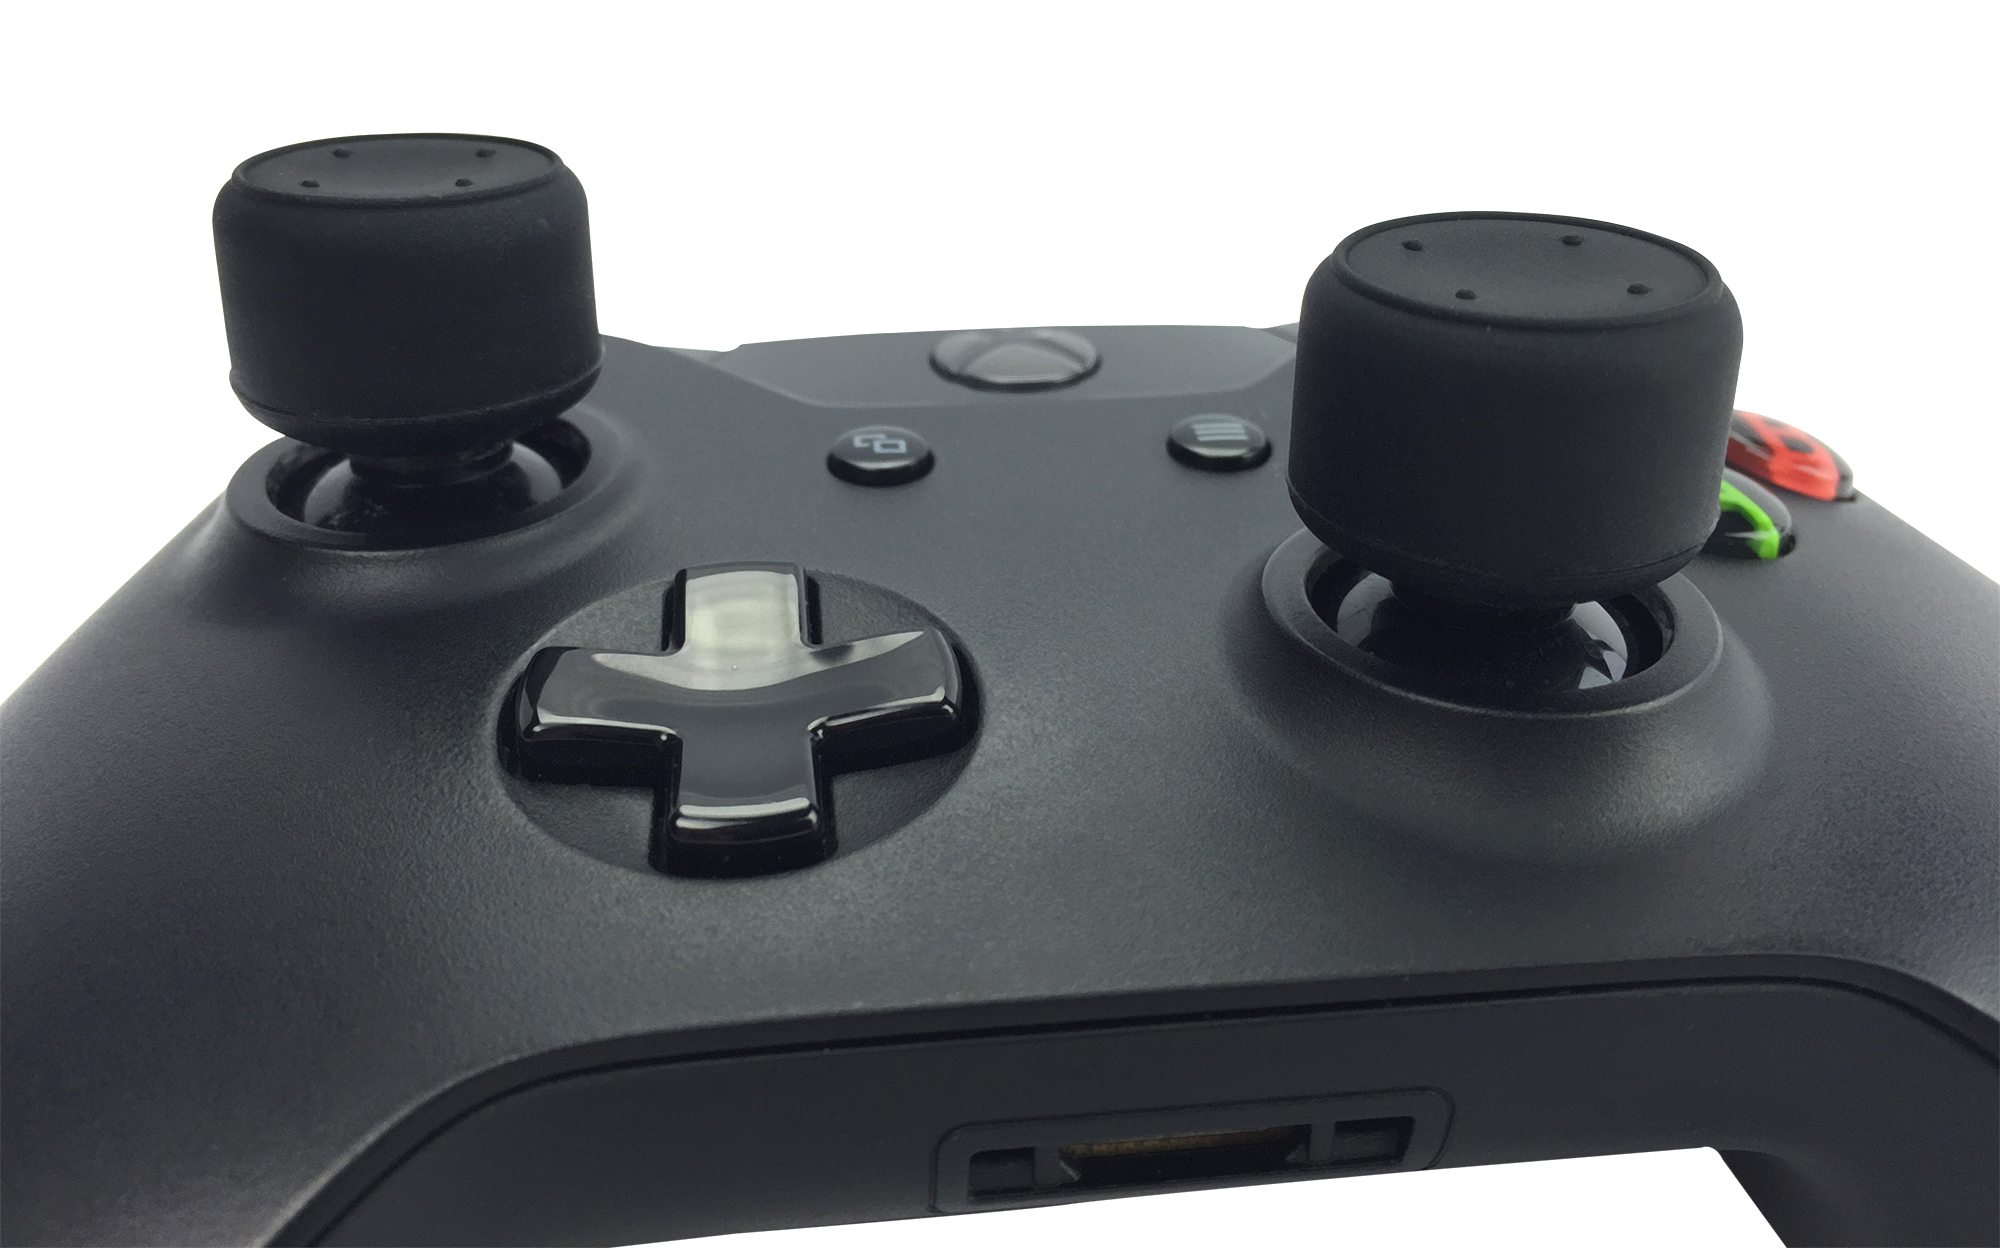 Provide New Life To Older Worn Controllers With The #XboxOneGrips